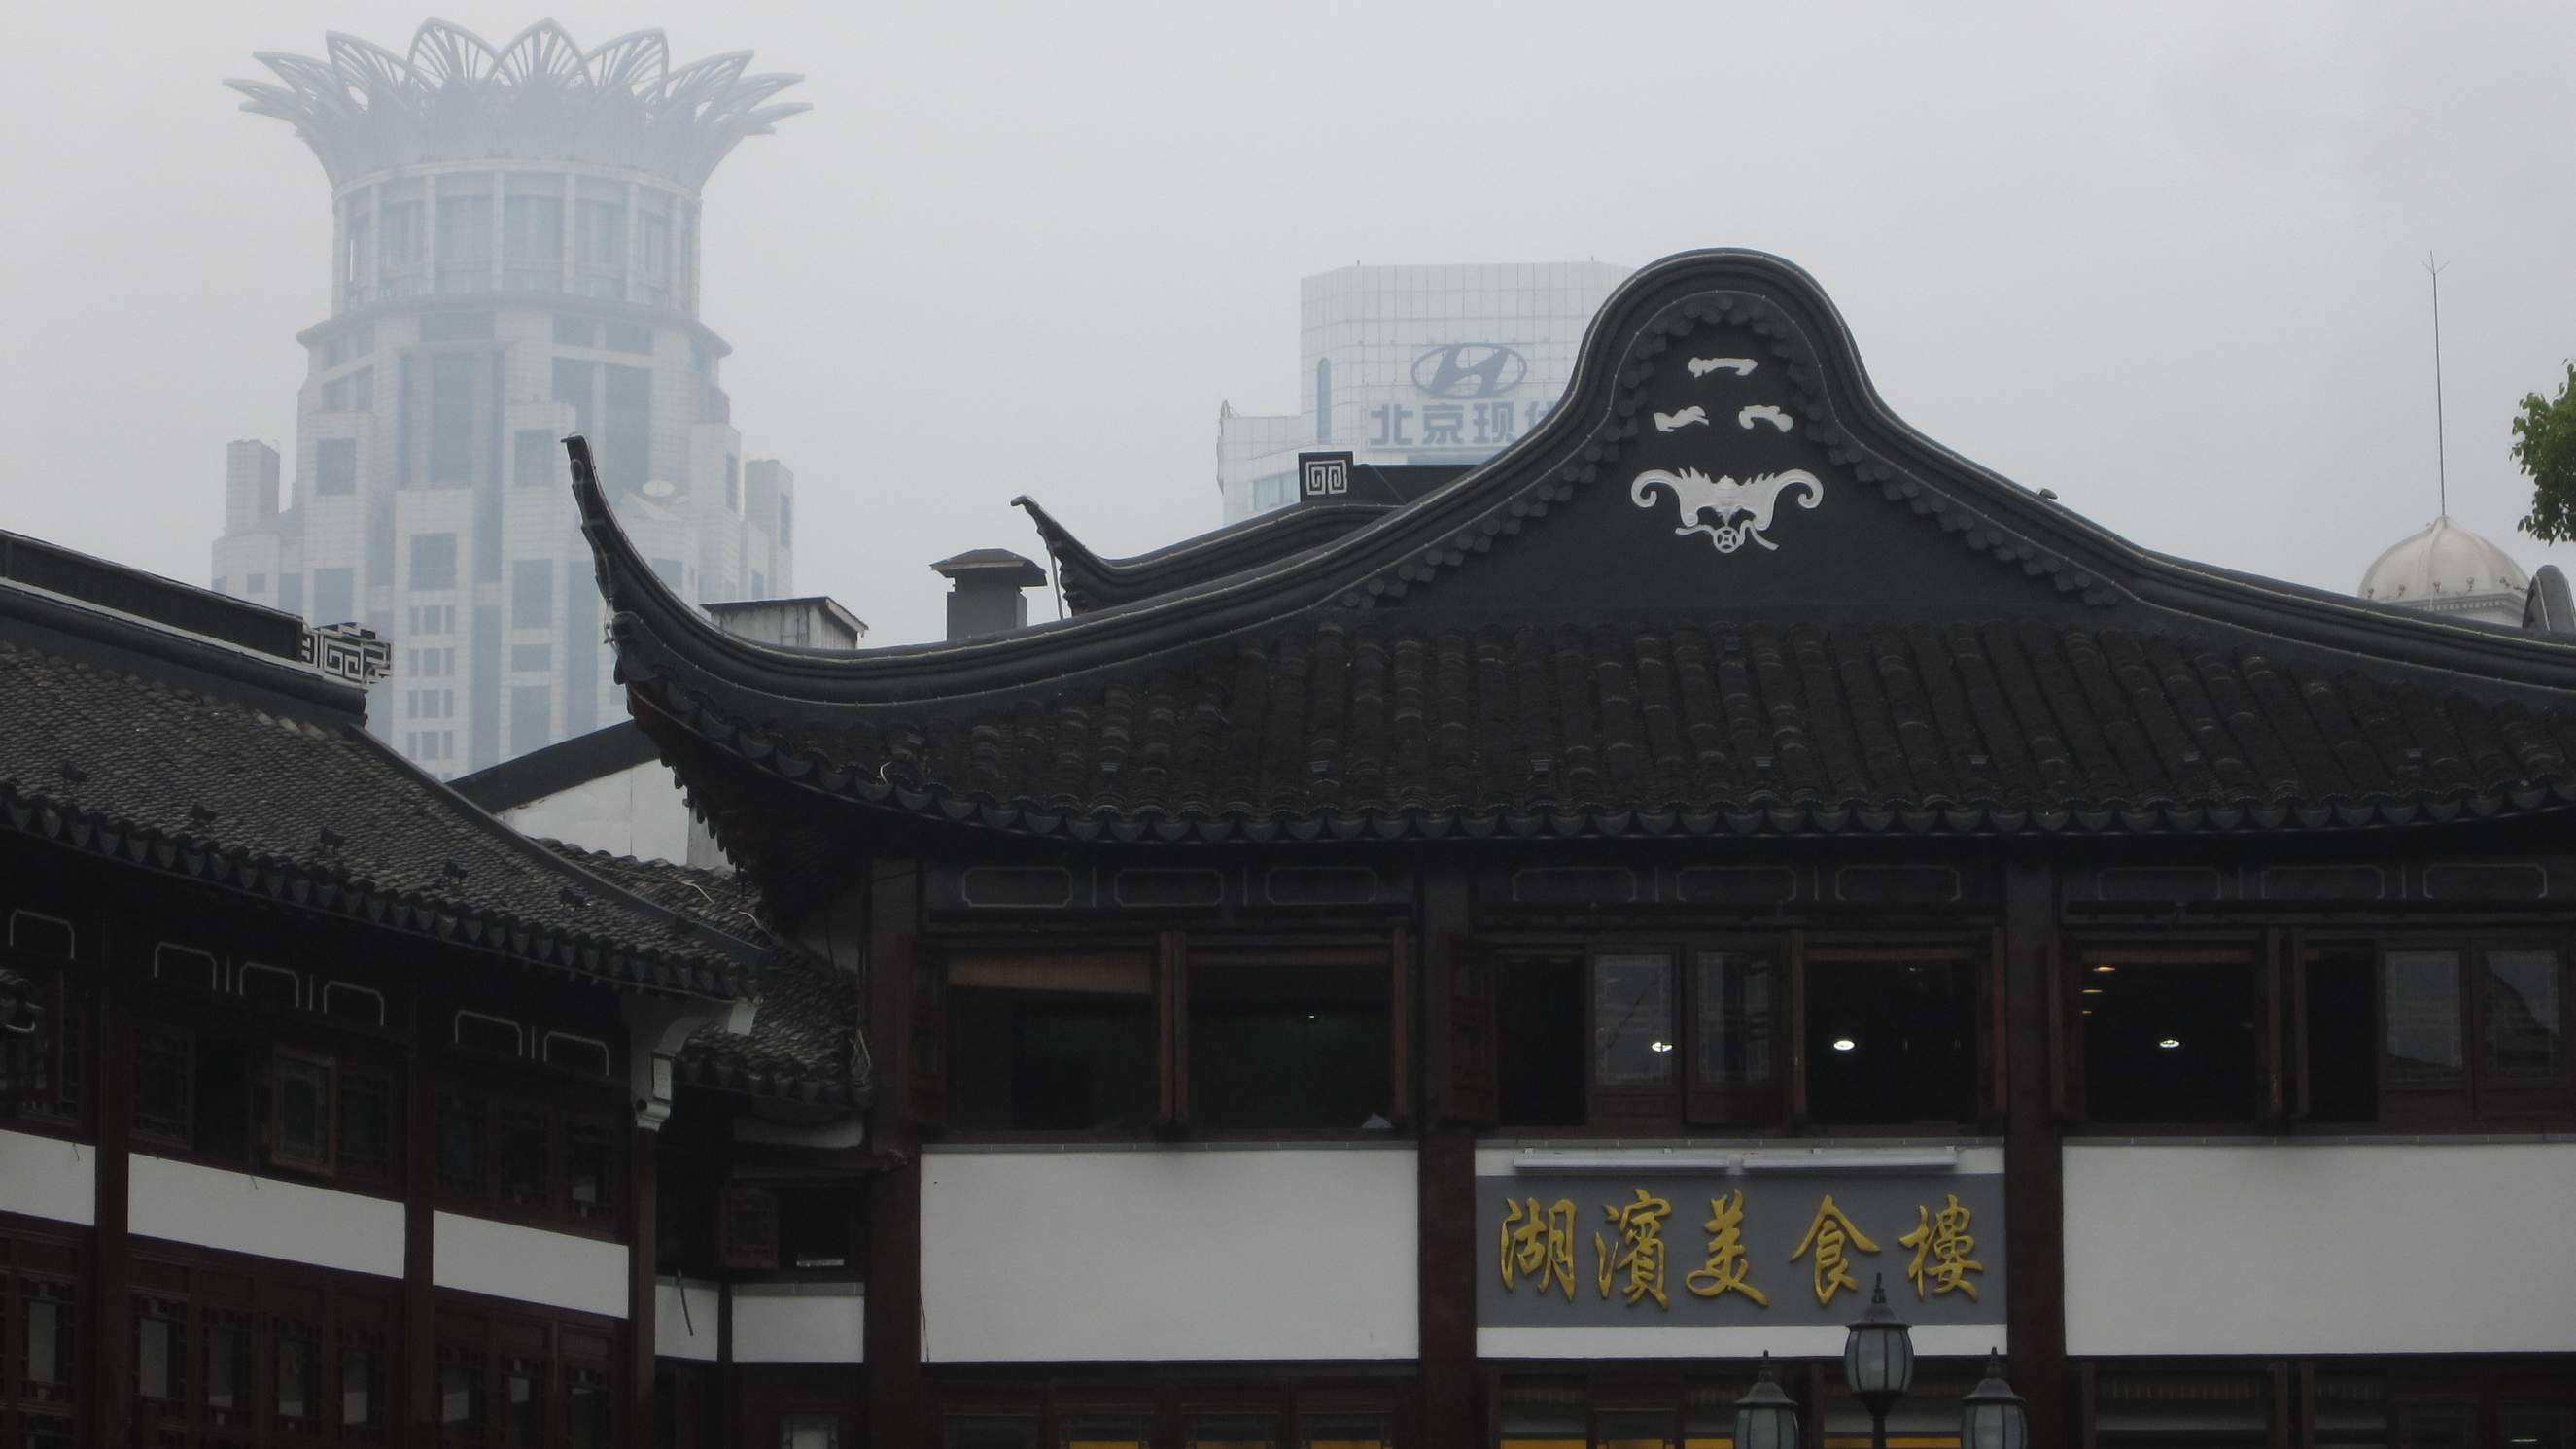 Building in the Town God's Temple area, with the top of the Bund Center in the background.